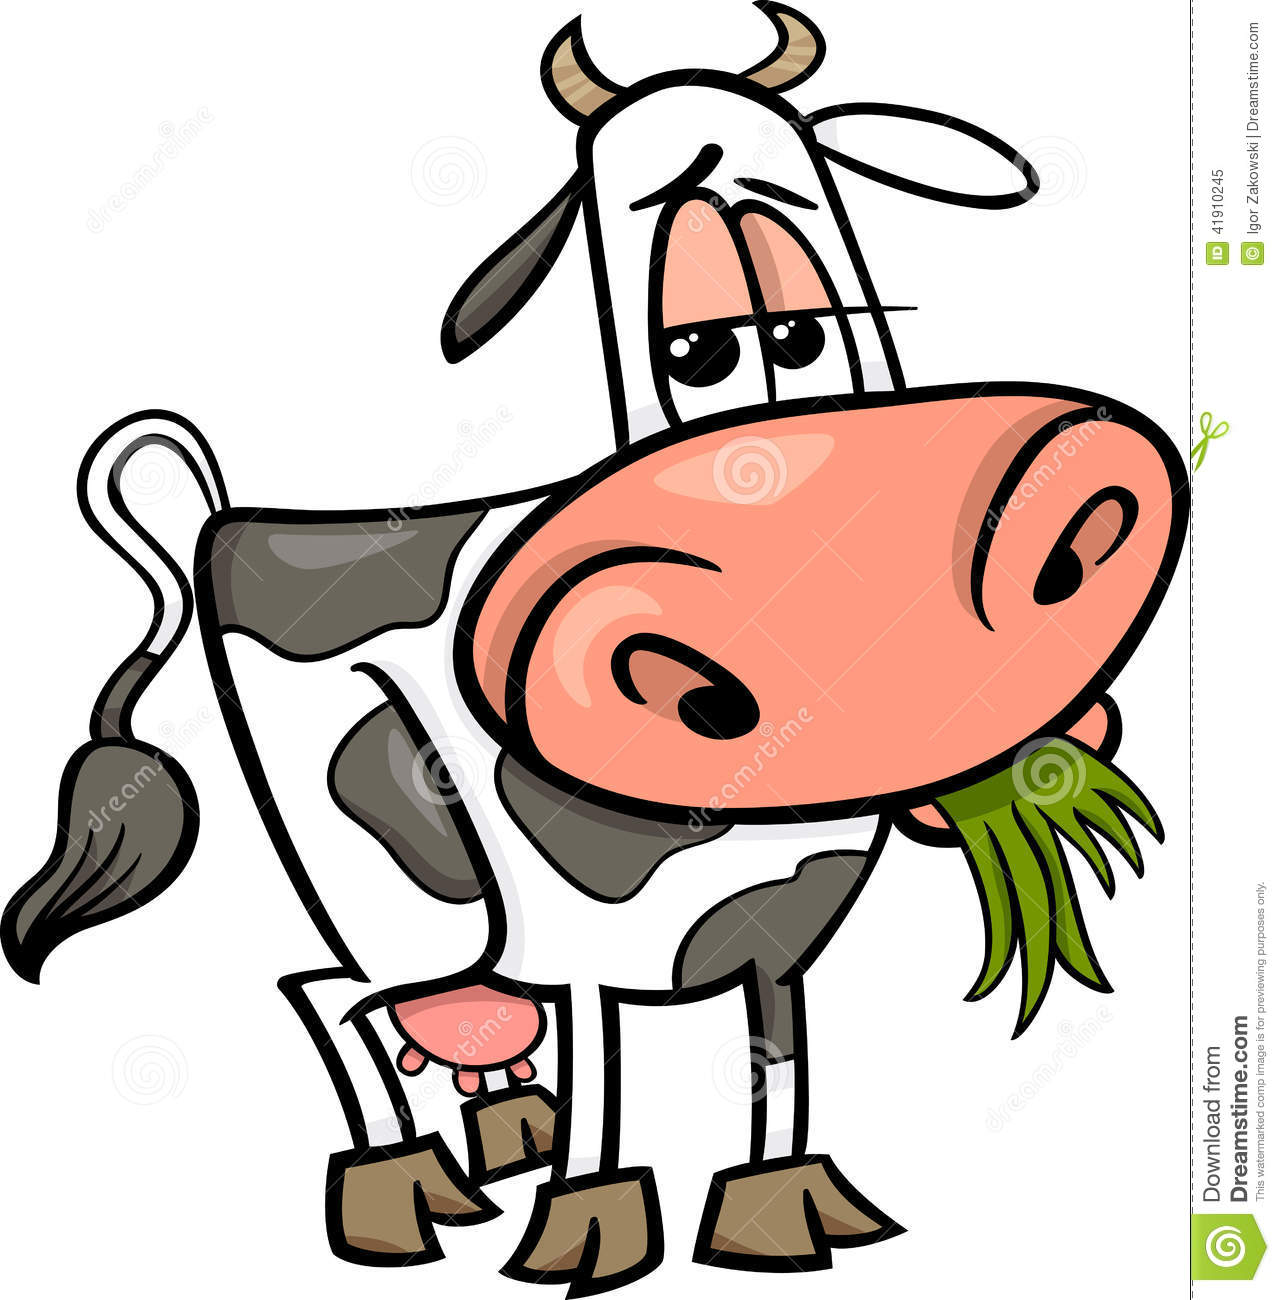 Cow Farm Animal Cartoon Illustration Stock Vector